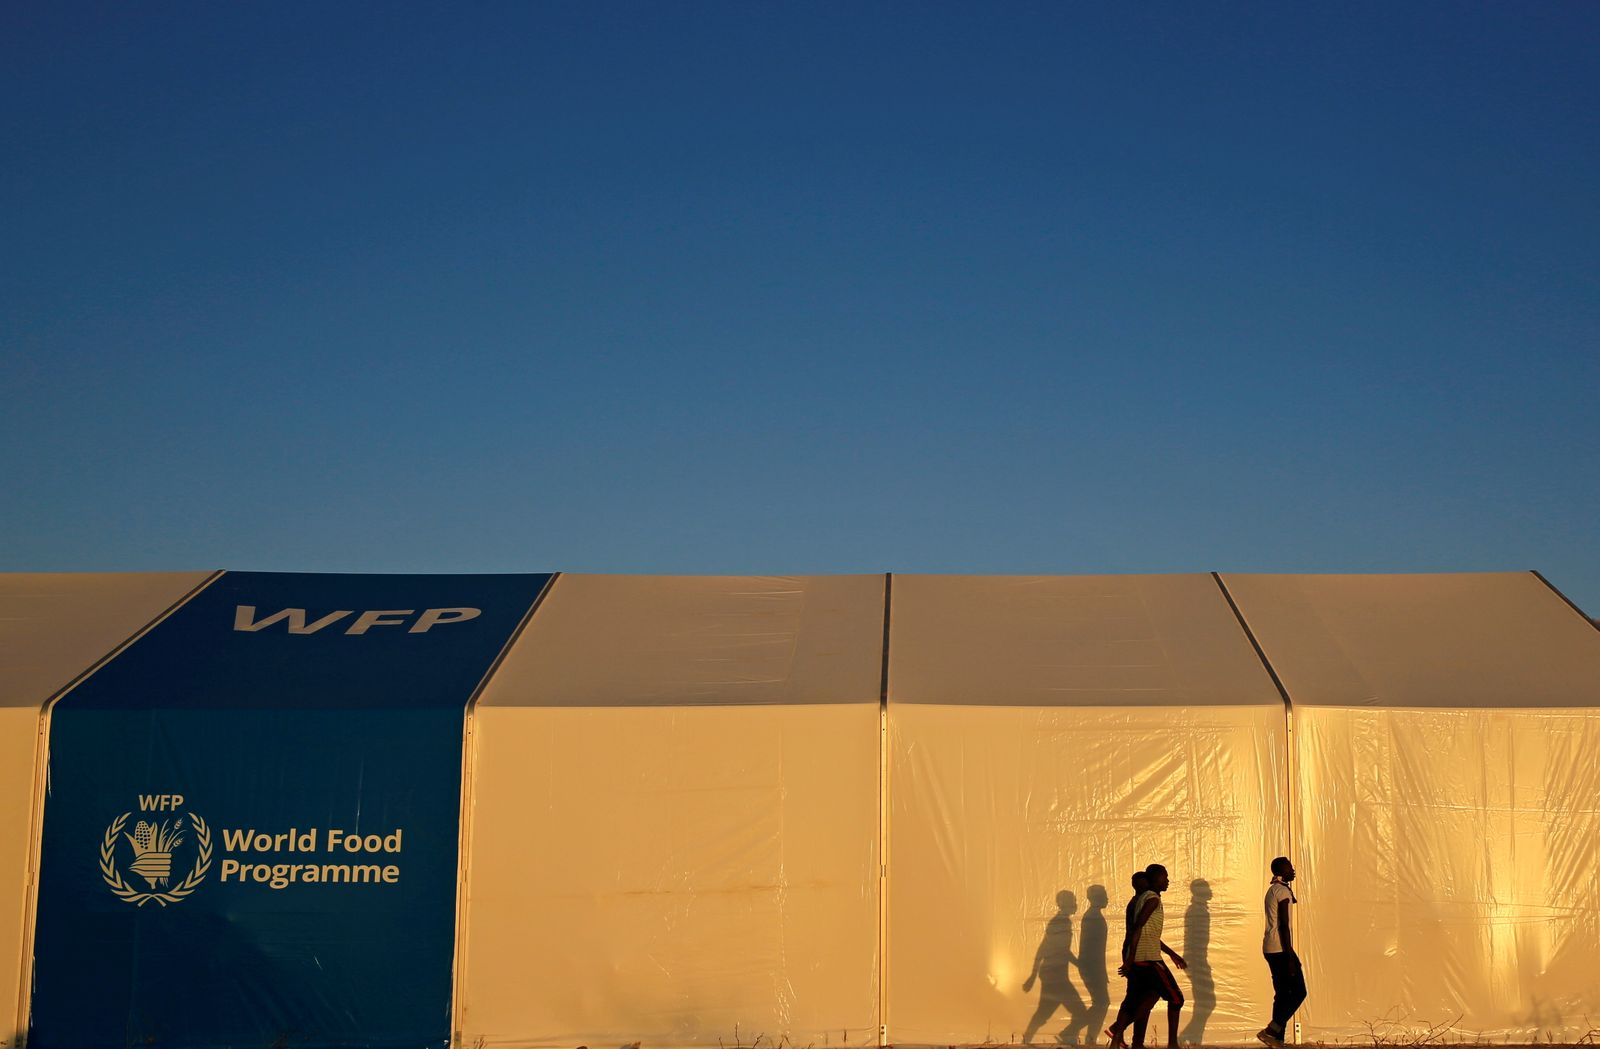 Ethiopian refugees fleeing from the ongoing fighting in Tigray region, walk past a World Food Programme tent, at the Um-Rakoba camp, on the Sudan-Ethiopia border, in the Al-Qadarif state